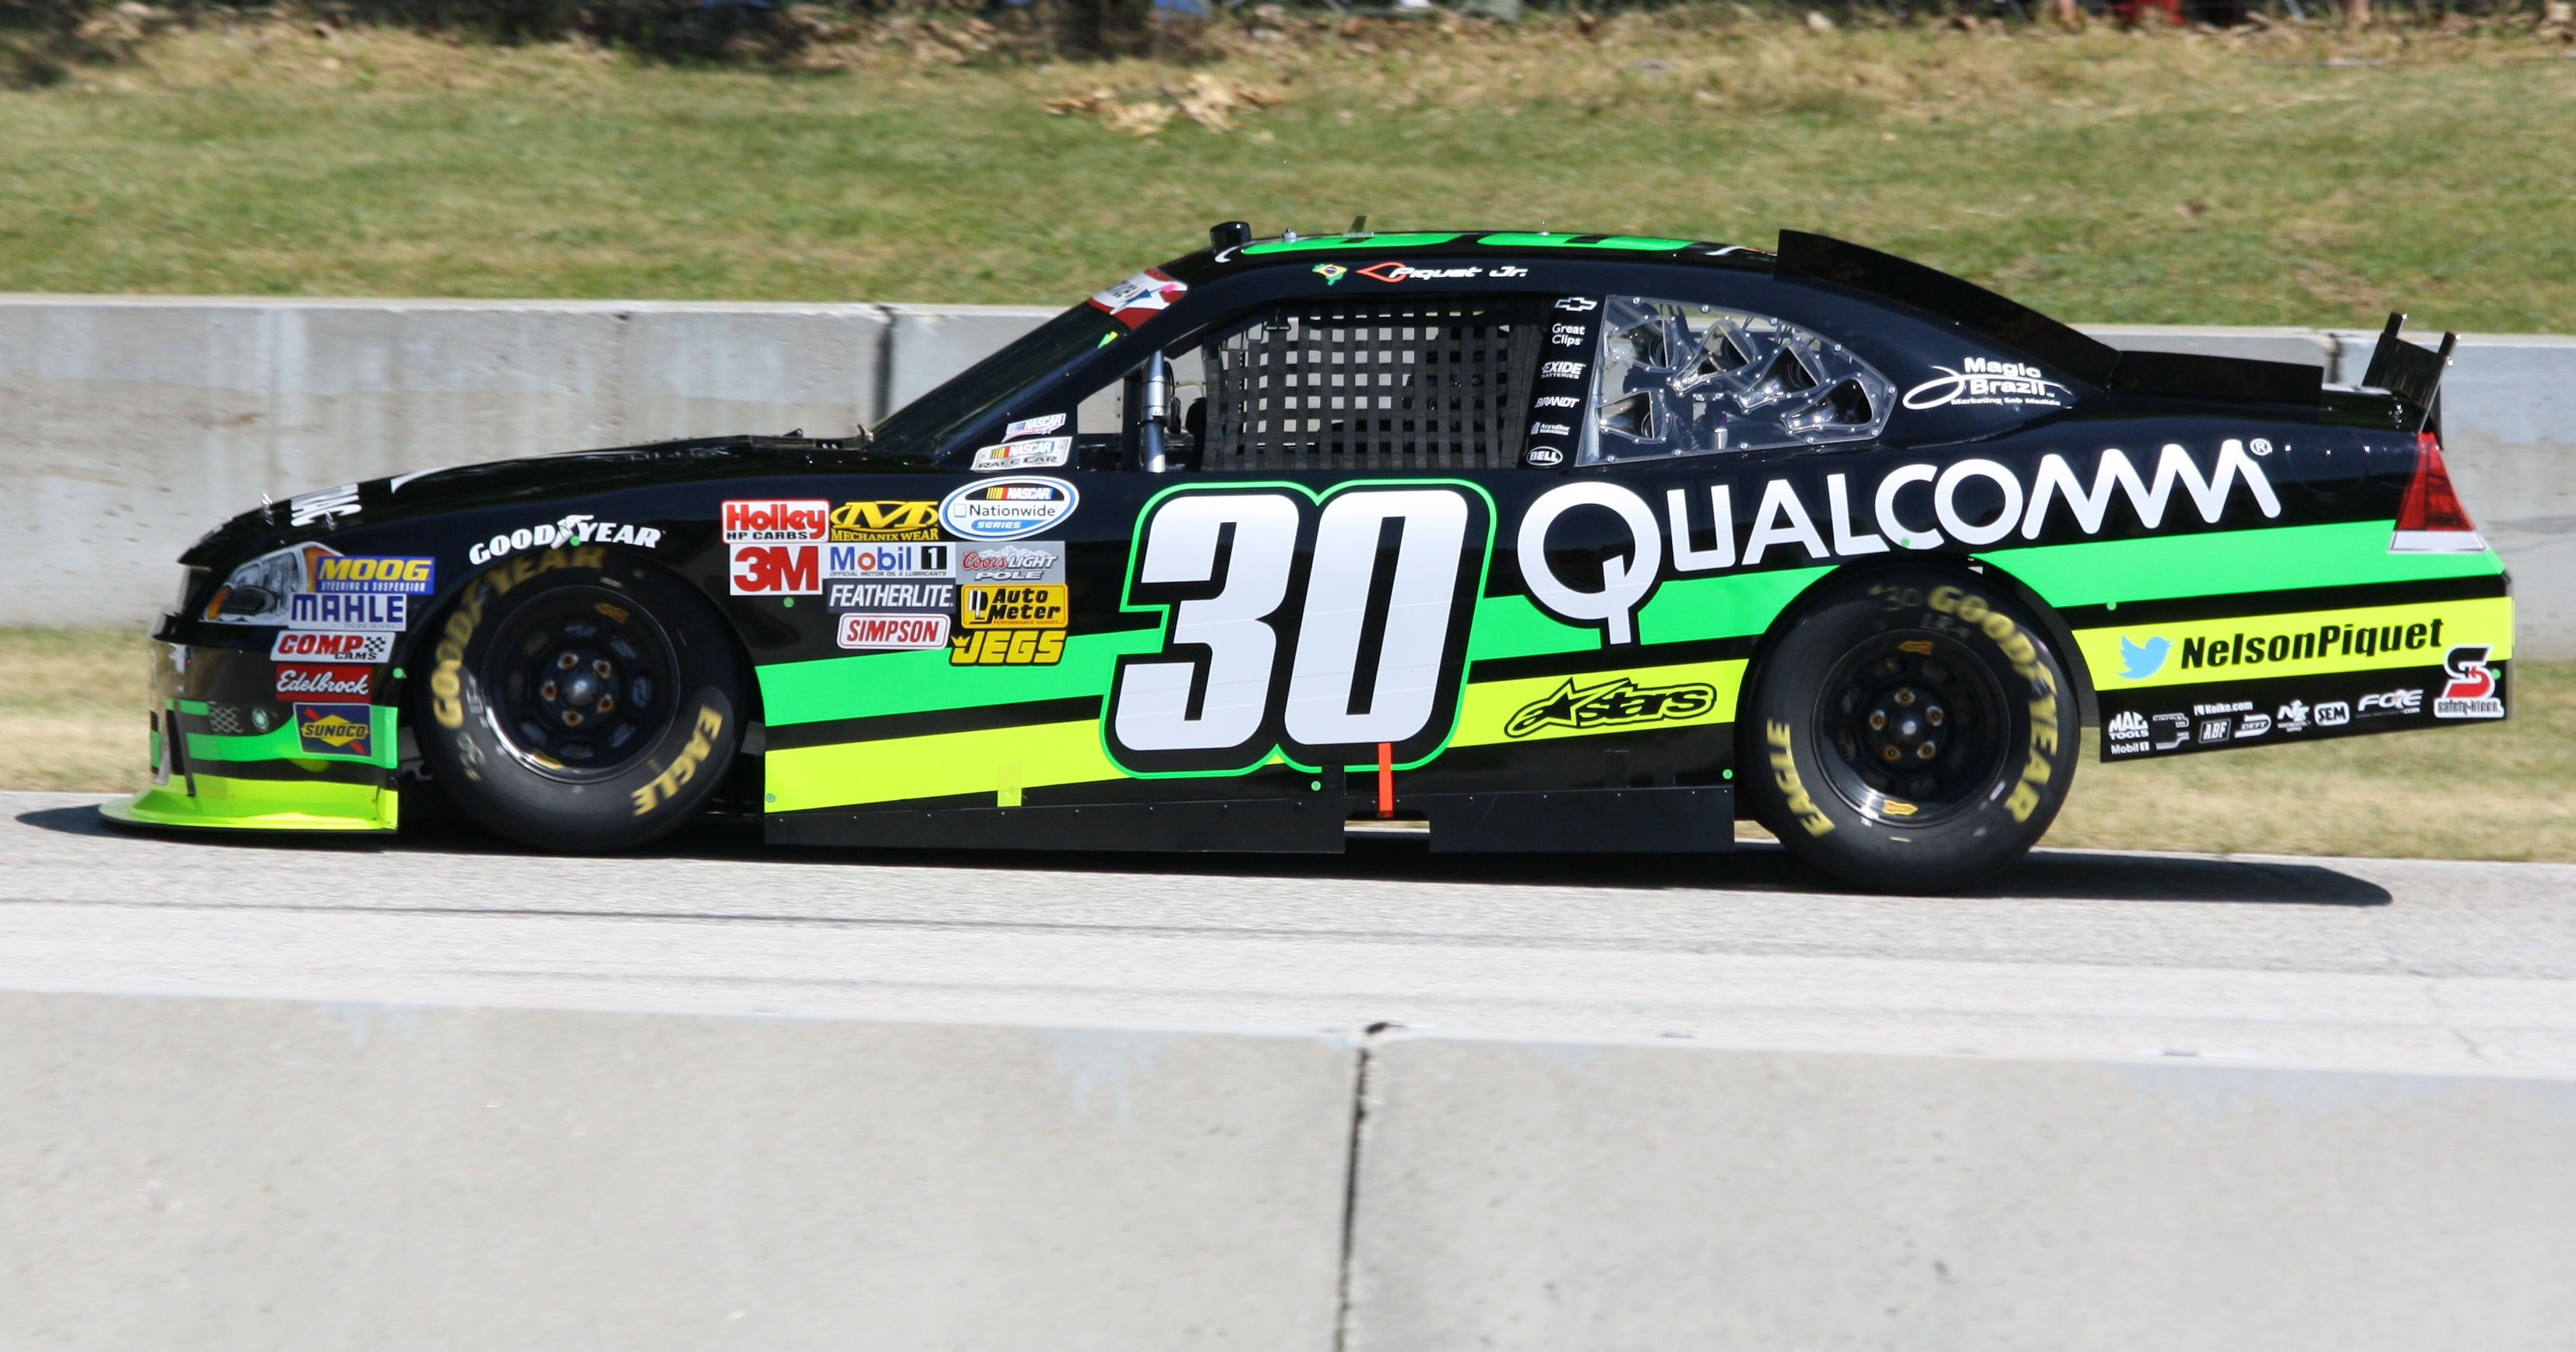 30_Nelson_Piquet_Jr_2012_Road_America_Nationwide_Sargento_200_Qualifying_